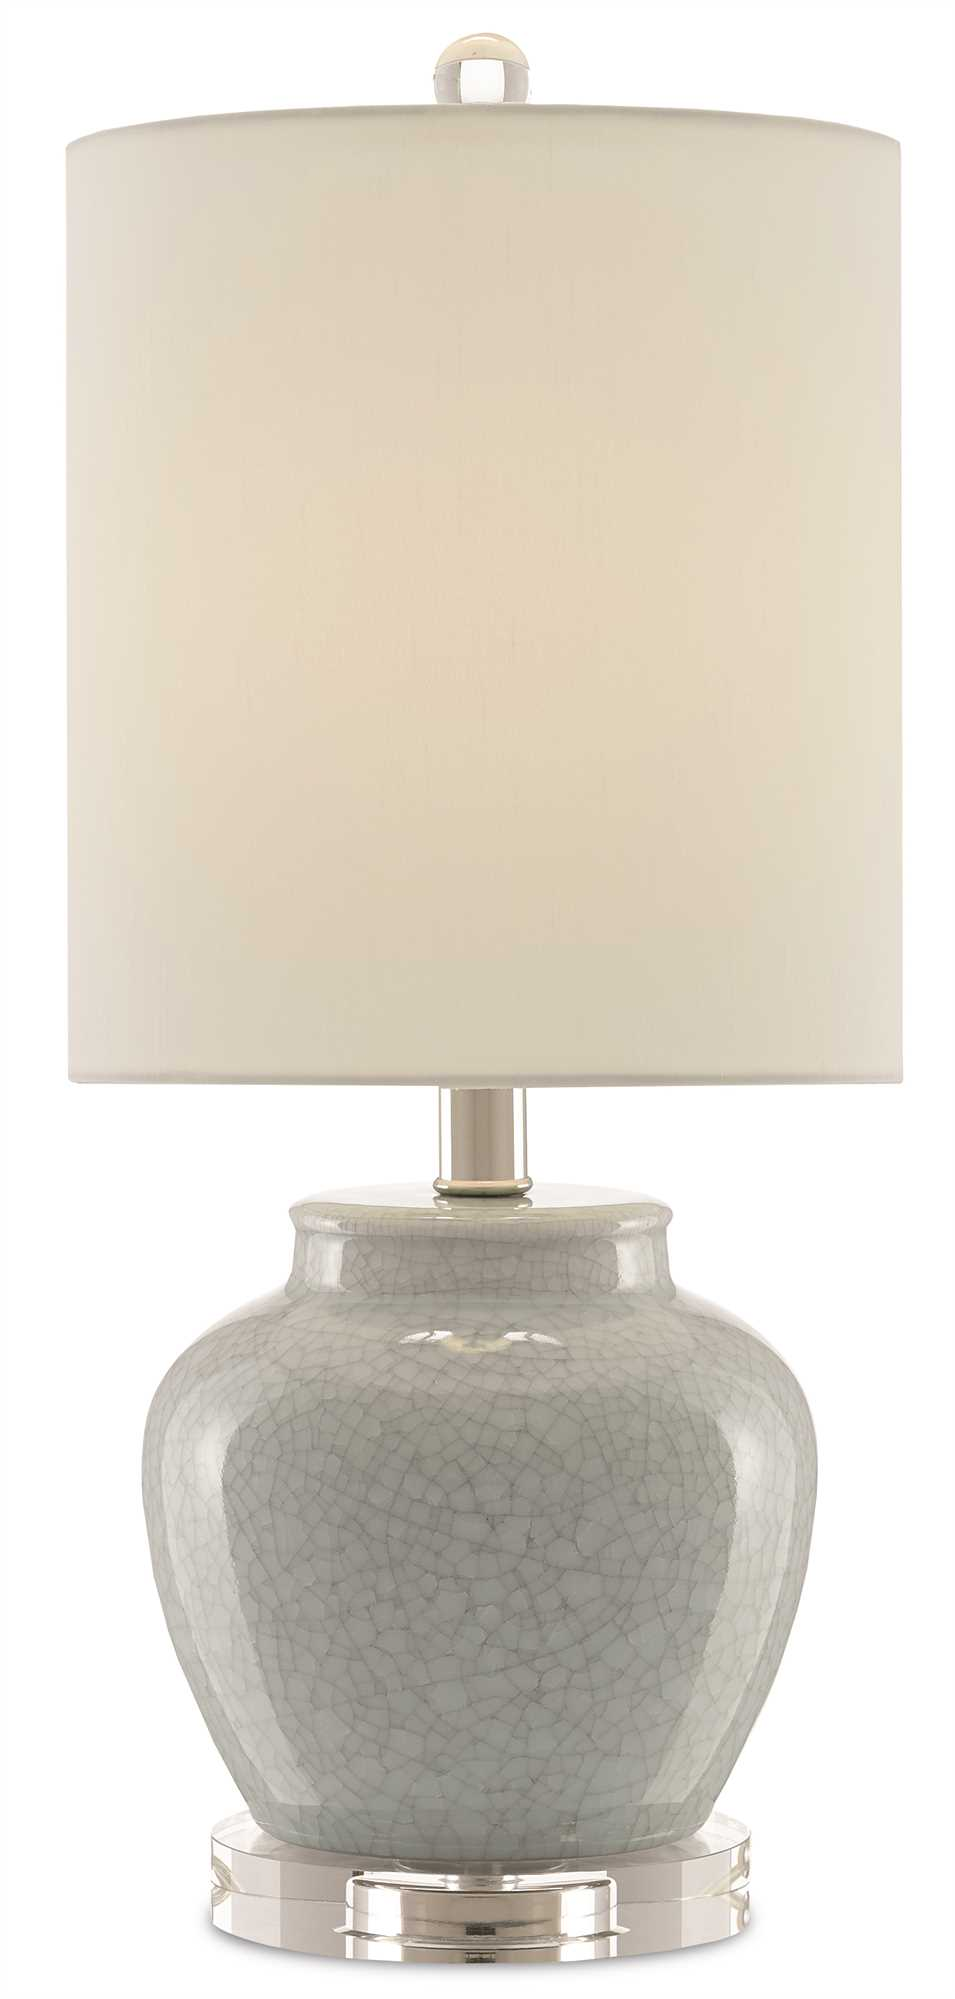 Currey and Company Marin Table Lamp 6000-0315